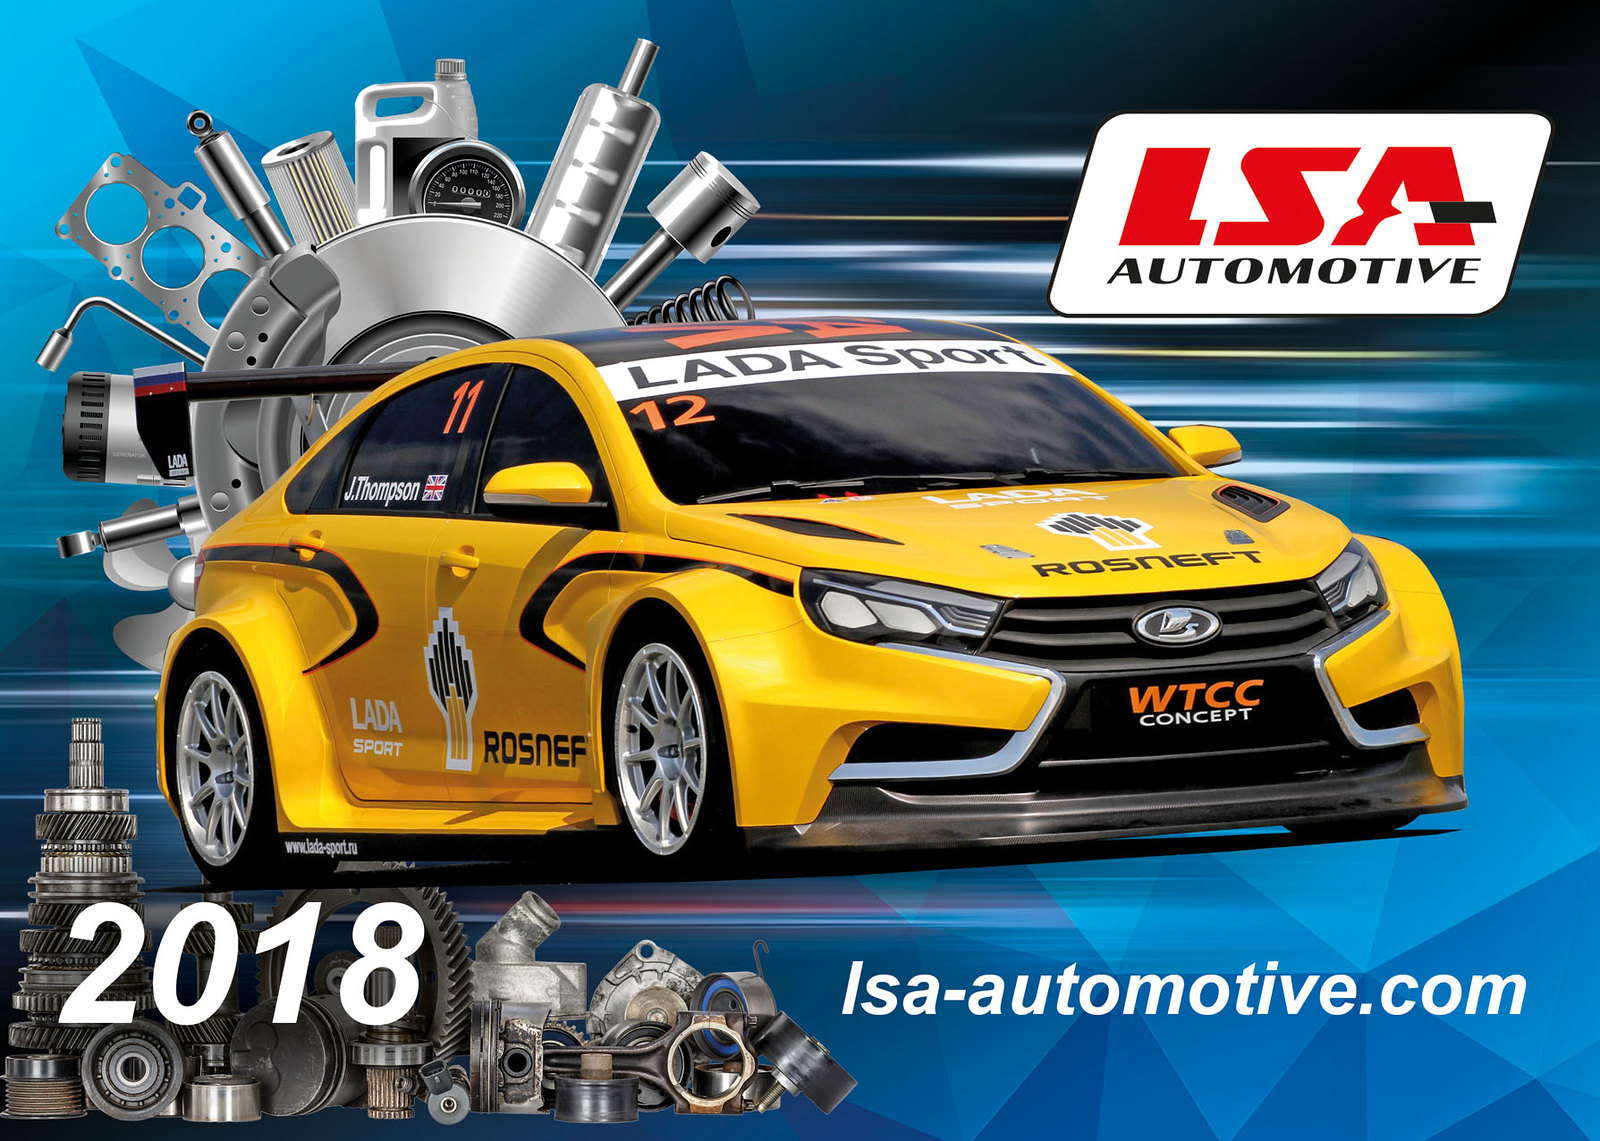 (07) LSA Automotive 01 verh